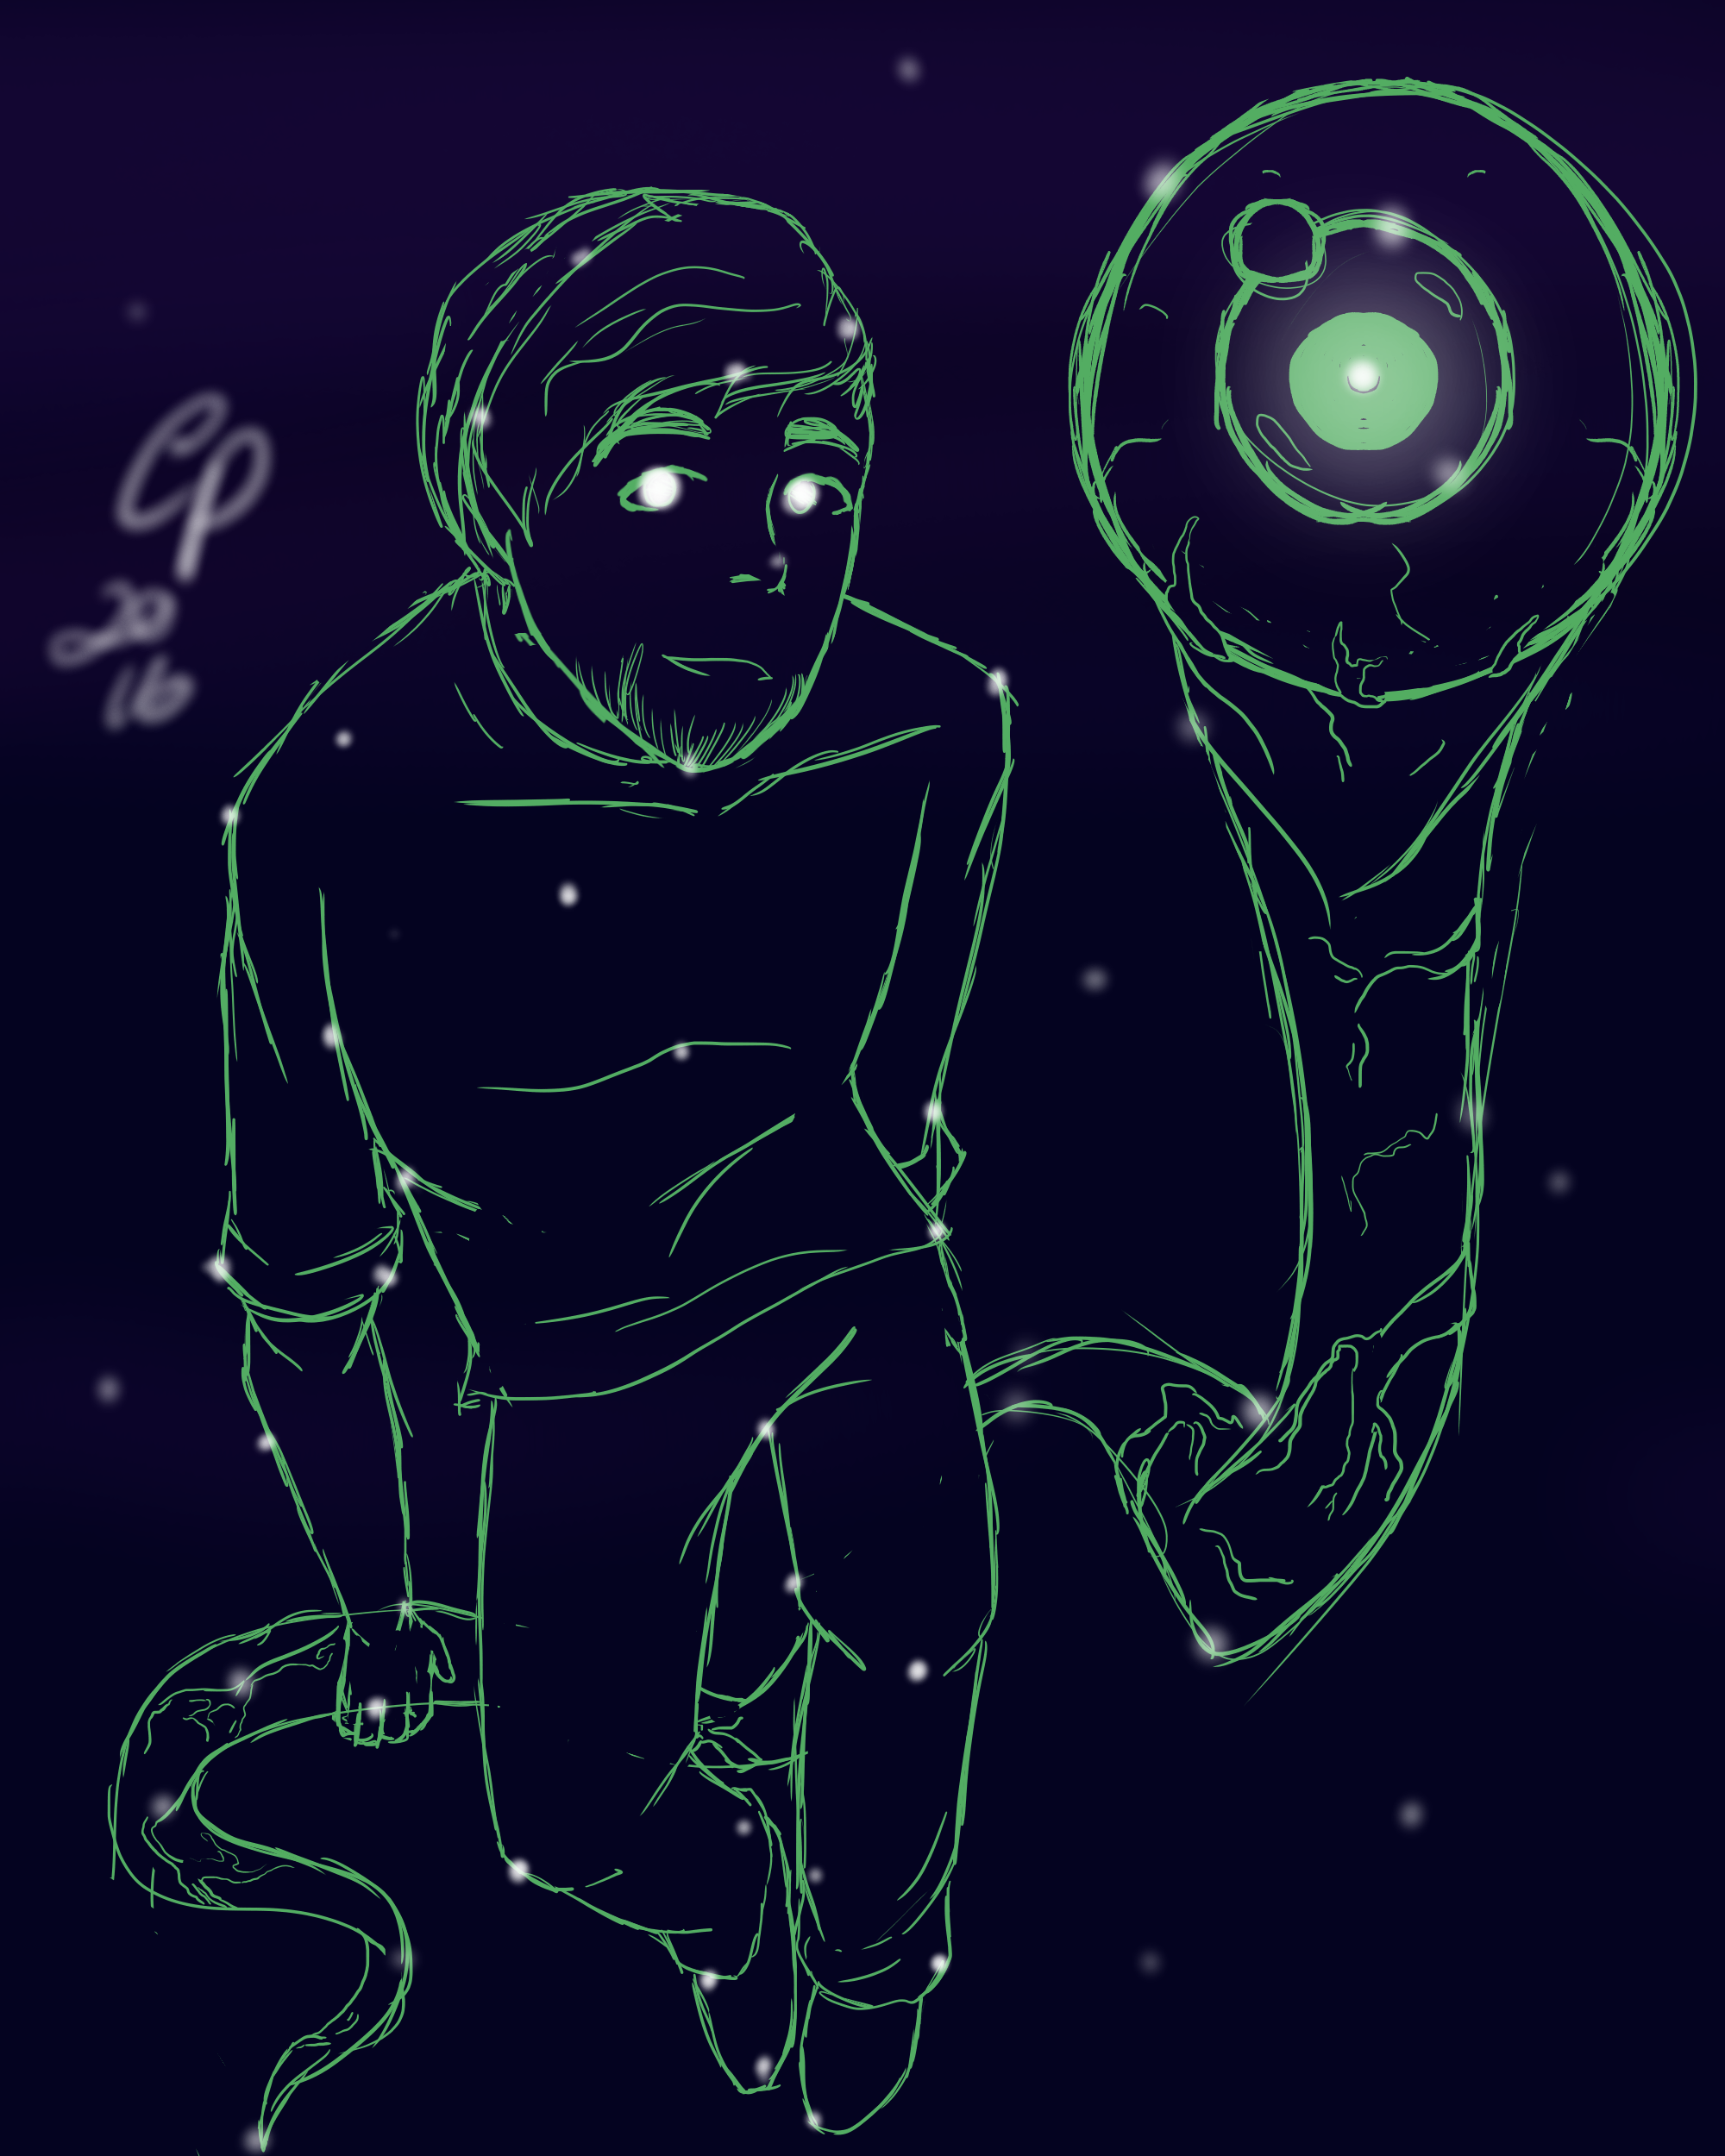 Happy 26th Bday Starry Jacksepticeye!